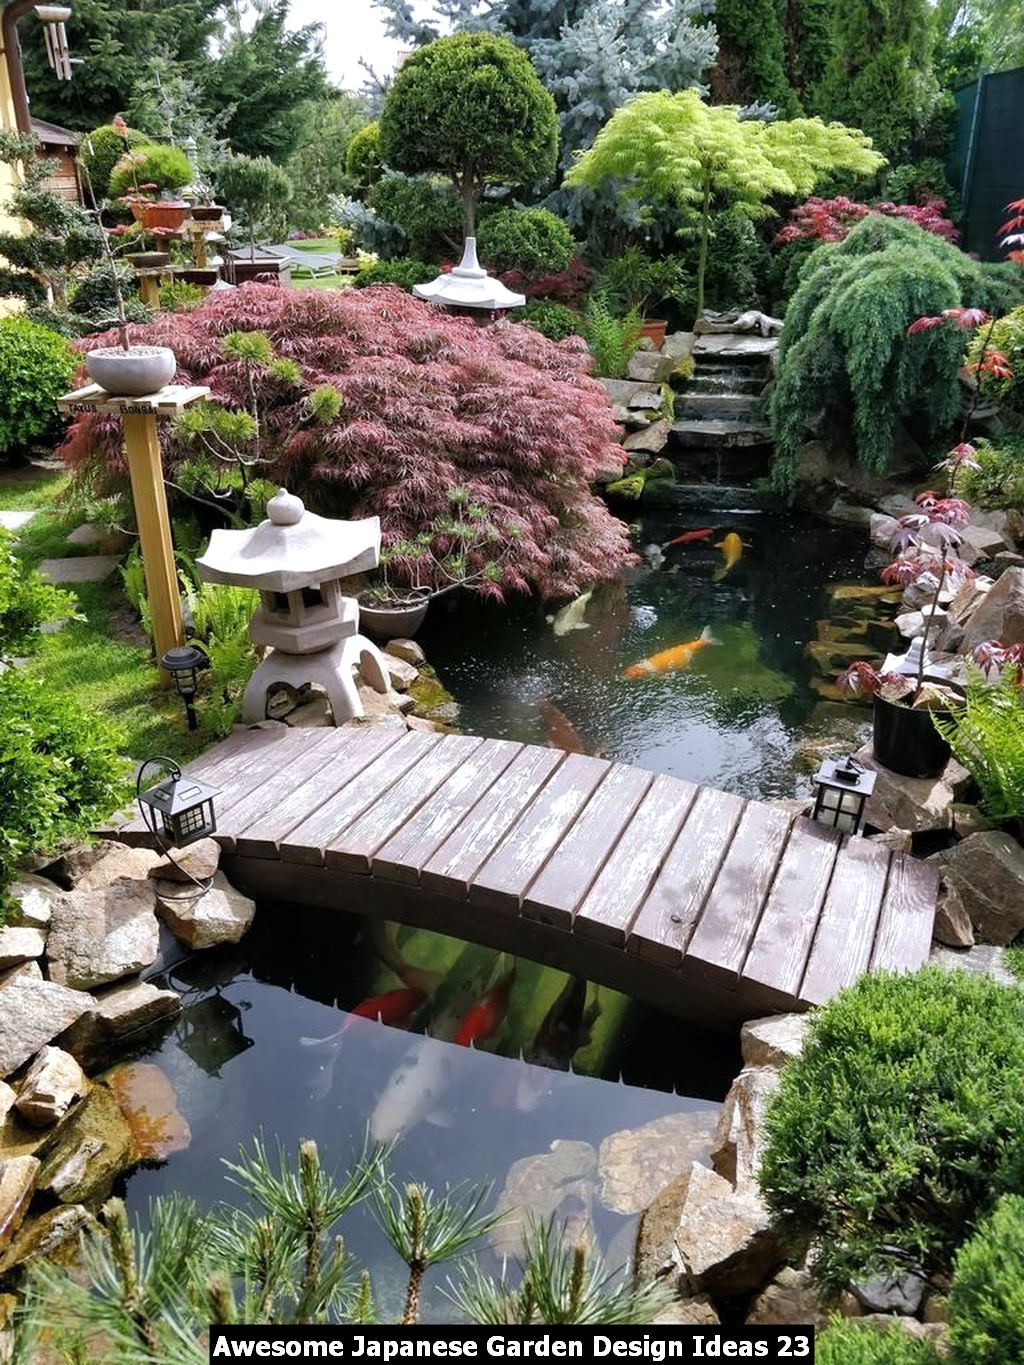 Awesome Japanese Garden Design Ideas 23